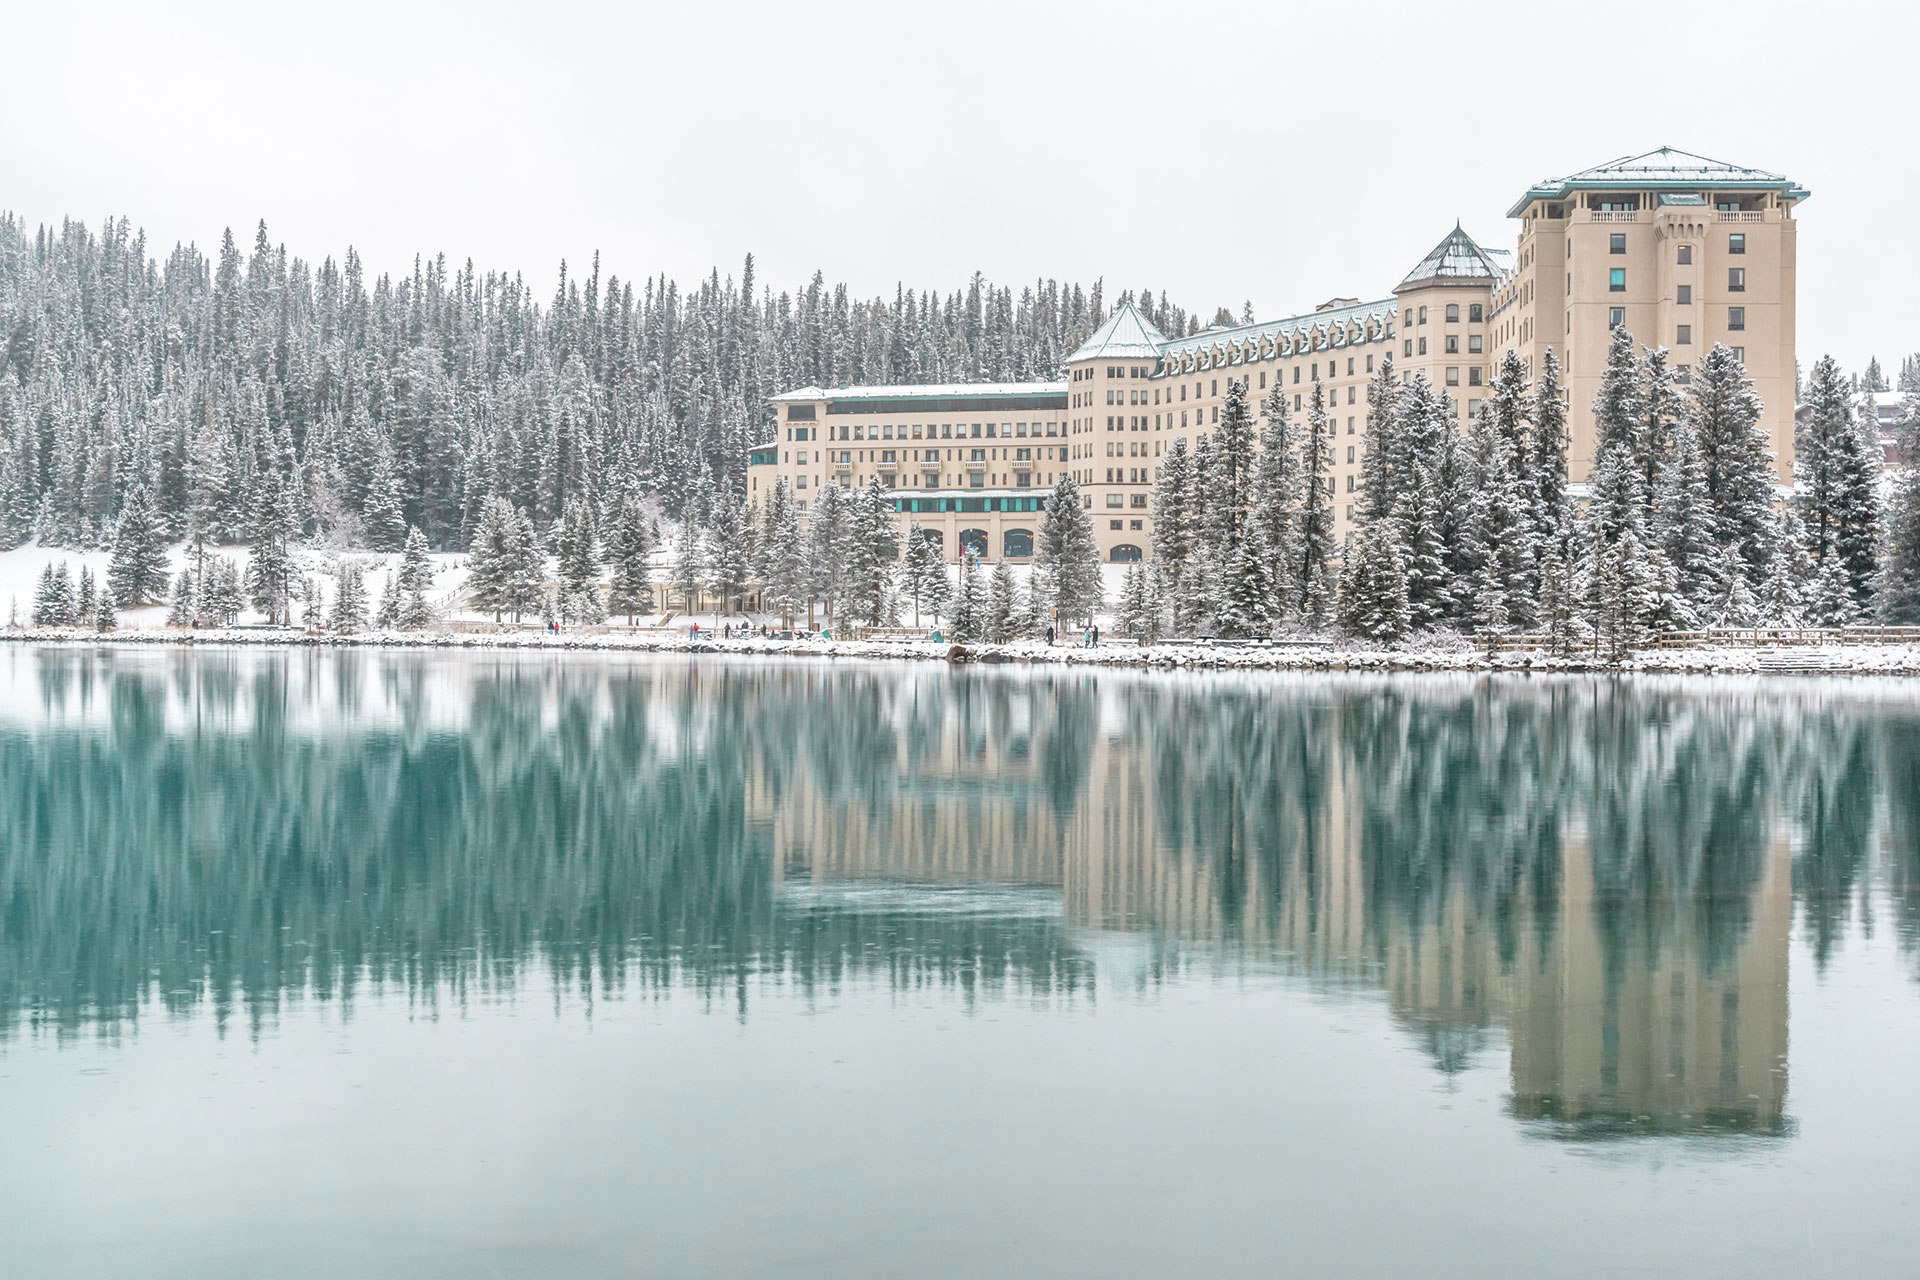 Lake Louise in Banff National Park, Canada during wintertime; Courtesy of Inger Eriksen/Shutterstock.com